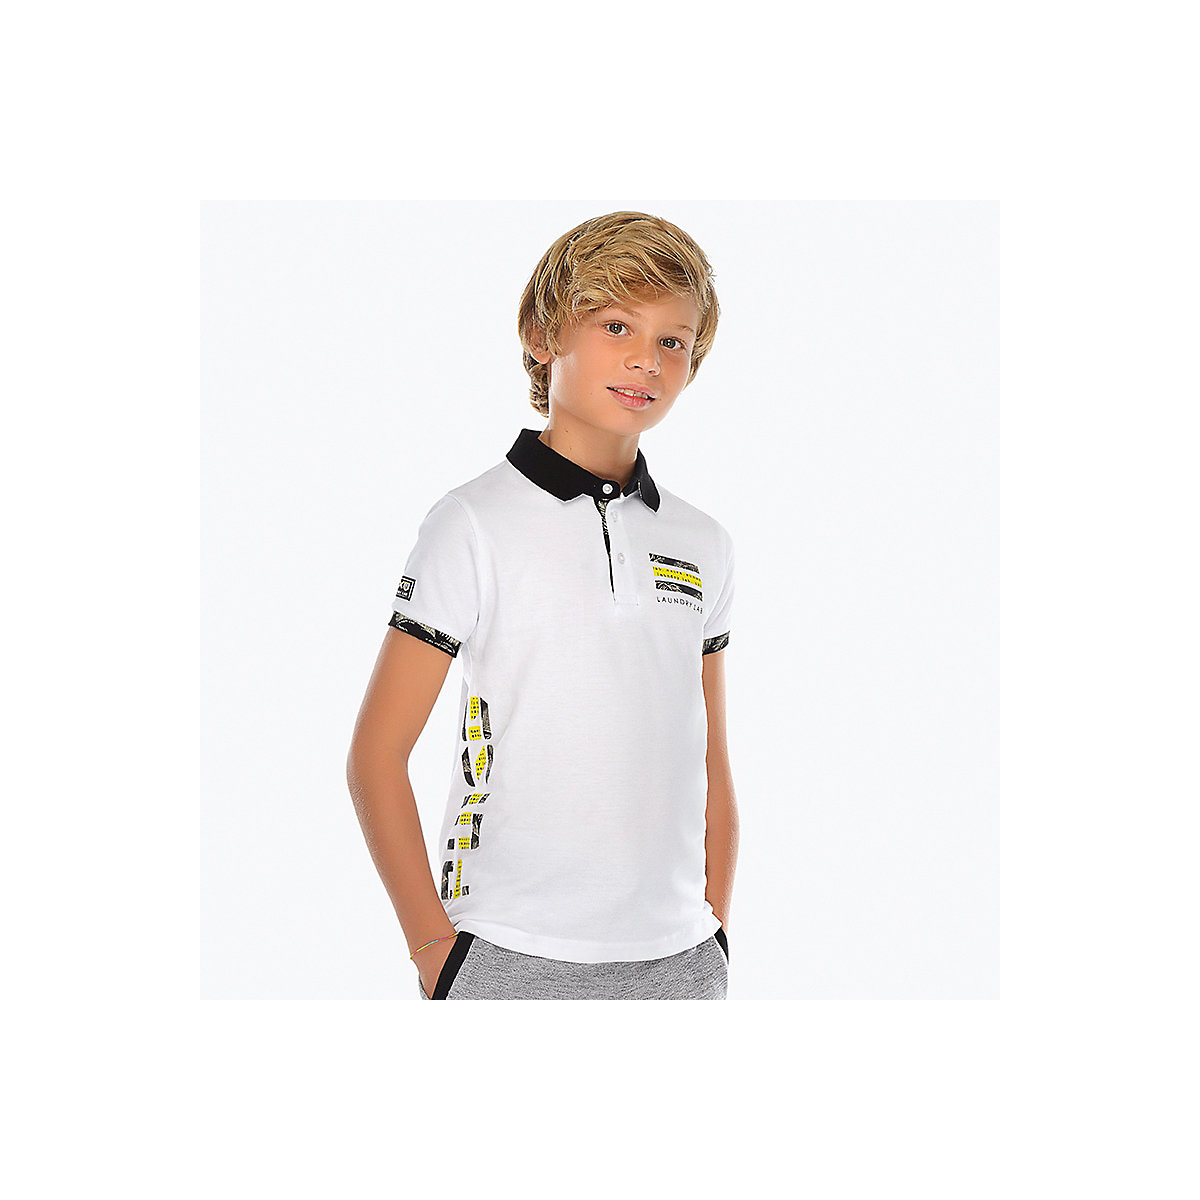 MAYORAL Polo Shirts 10689149 children clothing t-shirt shirt the print for boys green letter print t shirt